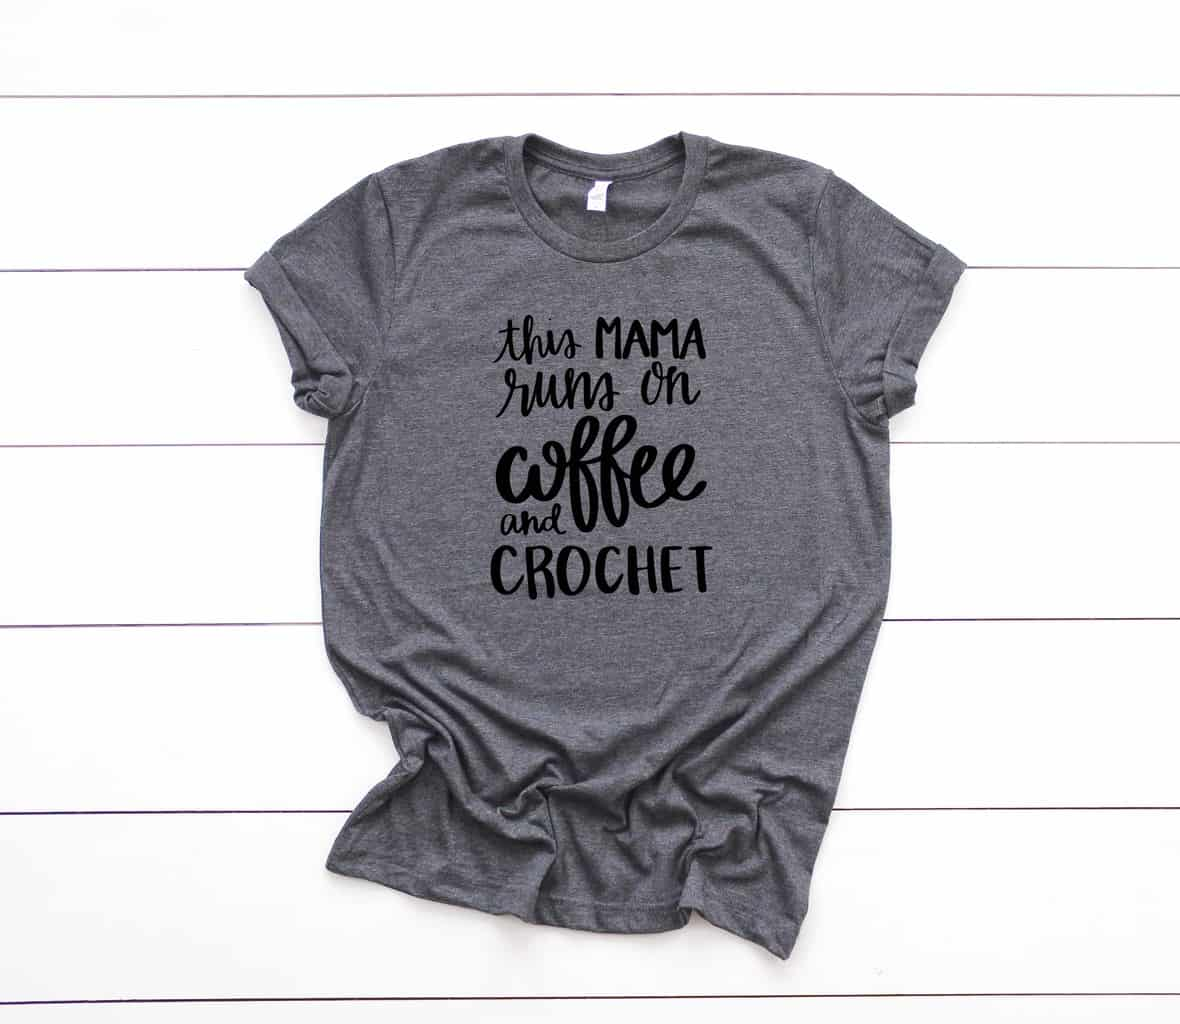 d2d7a84a Crochet T-Shirts - Funny Crochet Shirts from Yarn Mamas